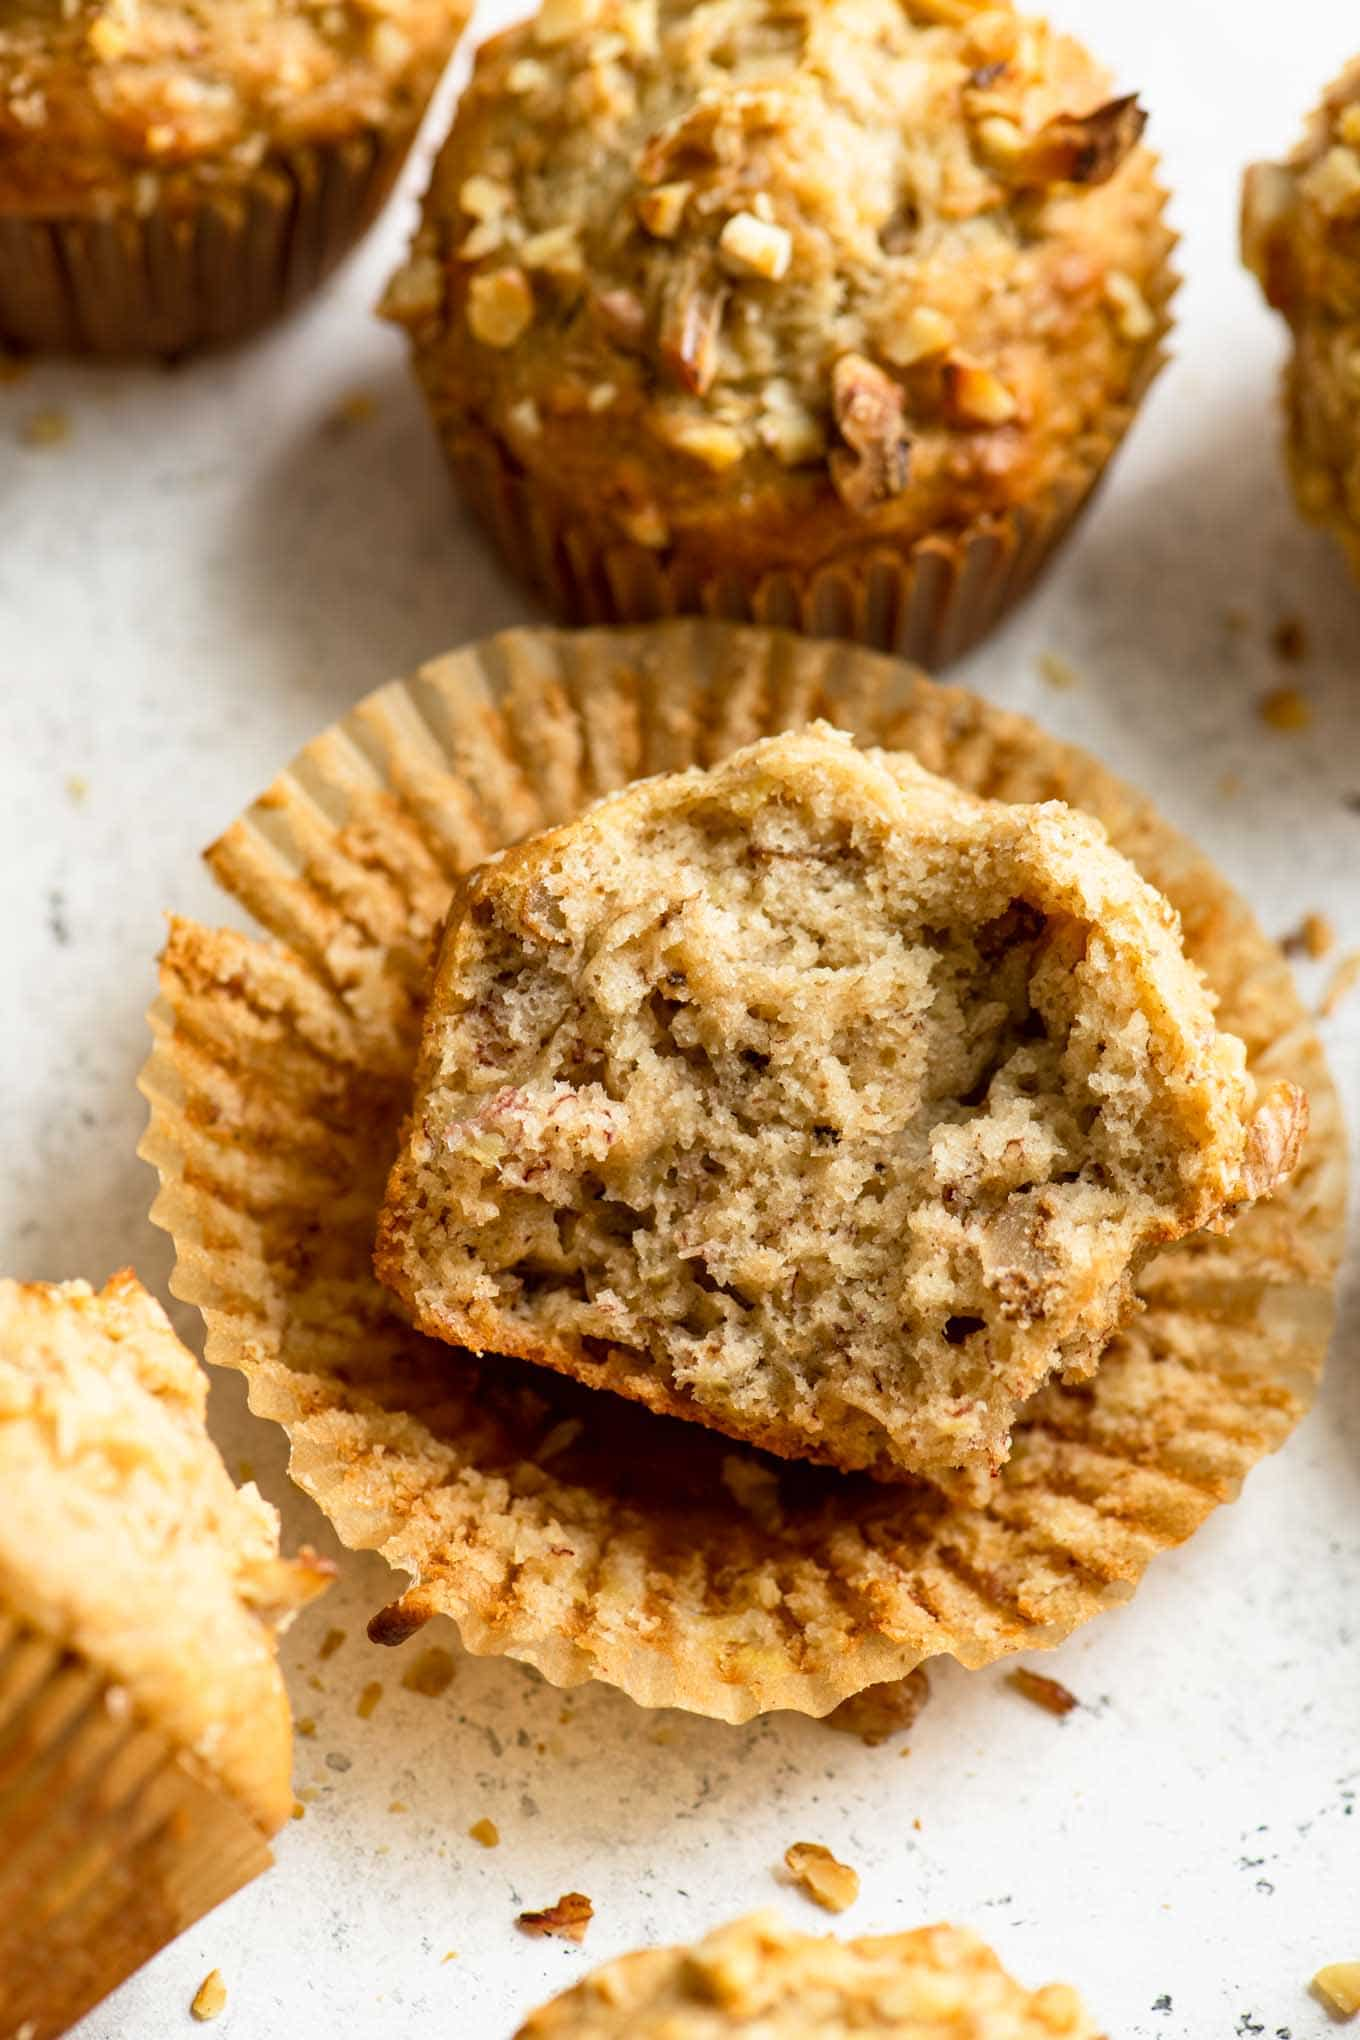 angled view of vegan banana nut muffin unwrapped and broken in half to show the soft crumb